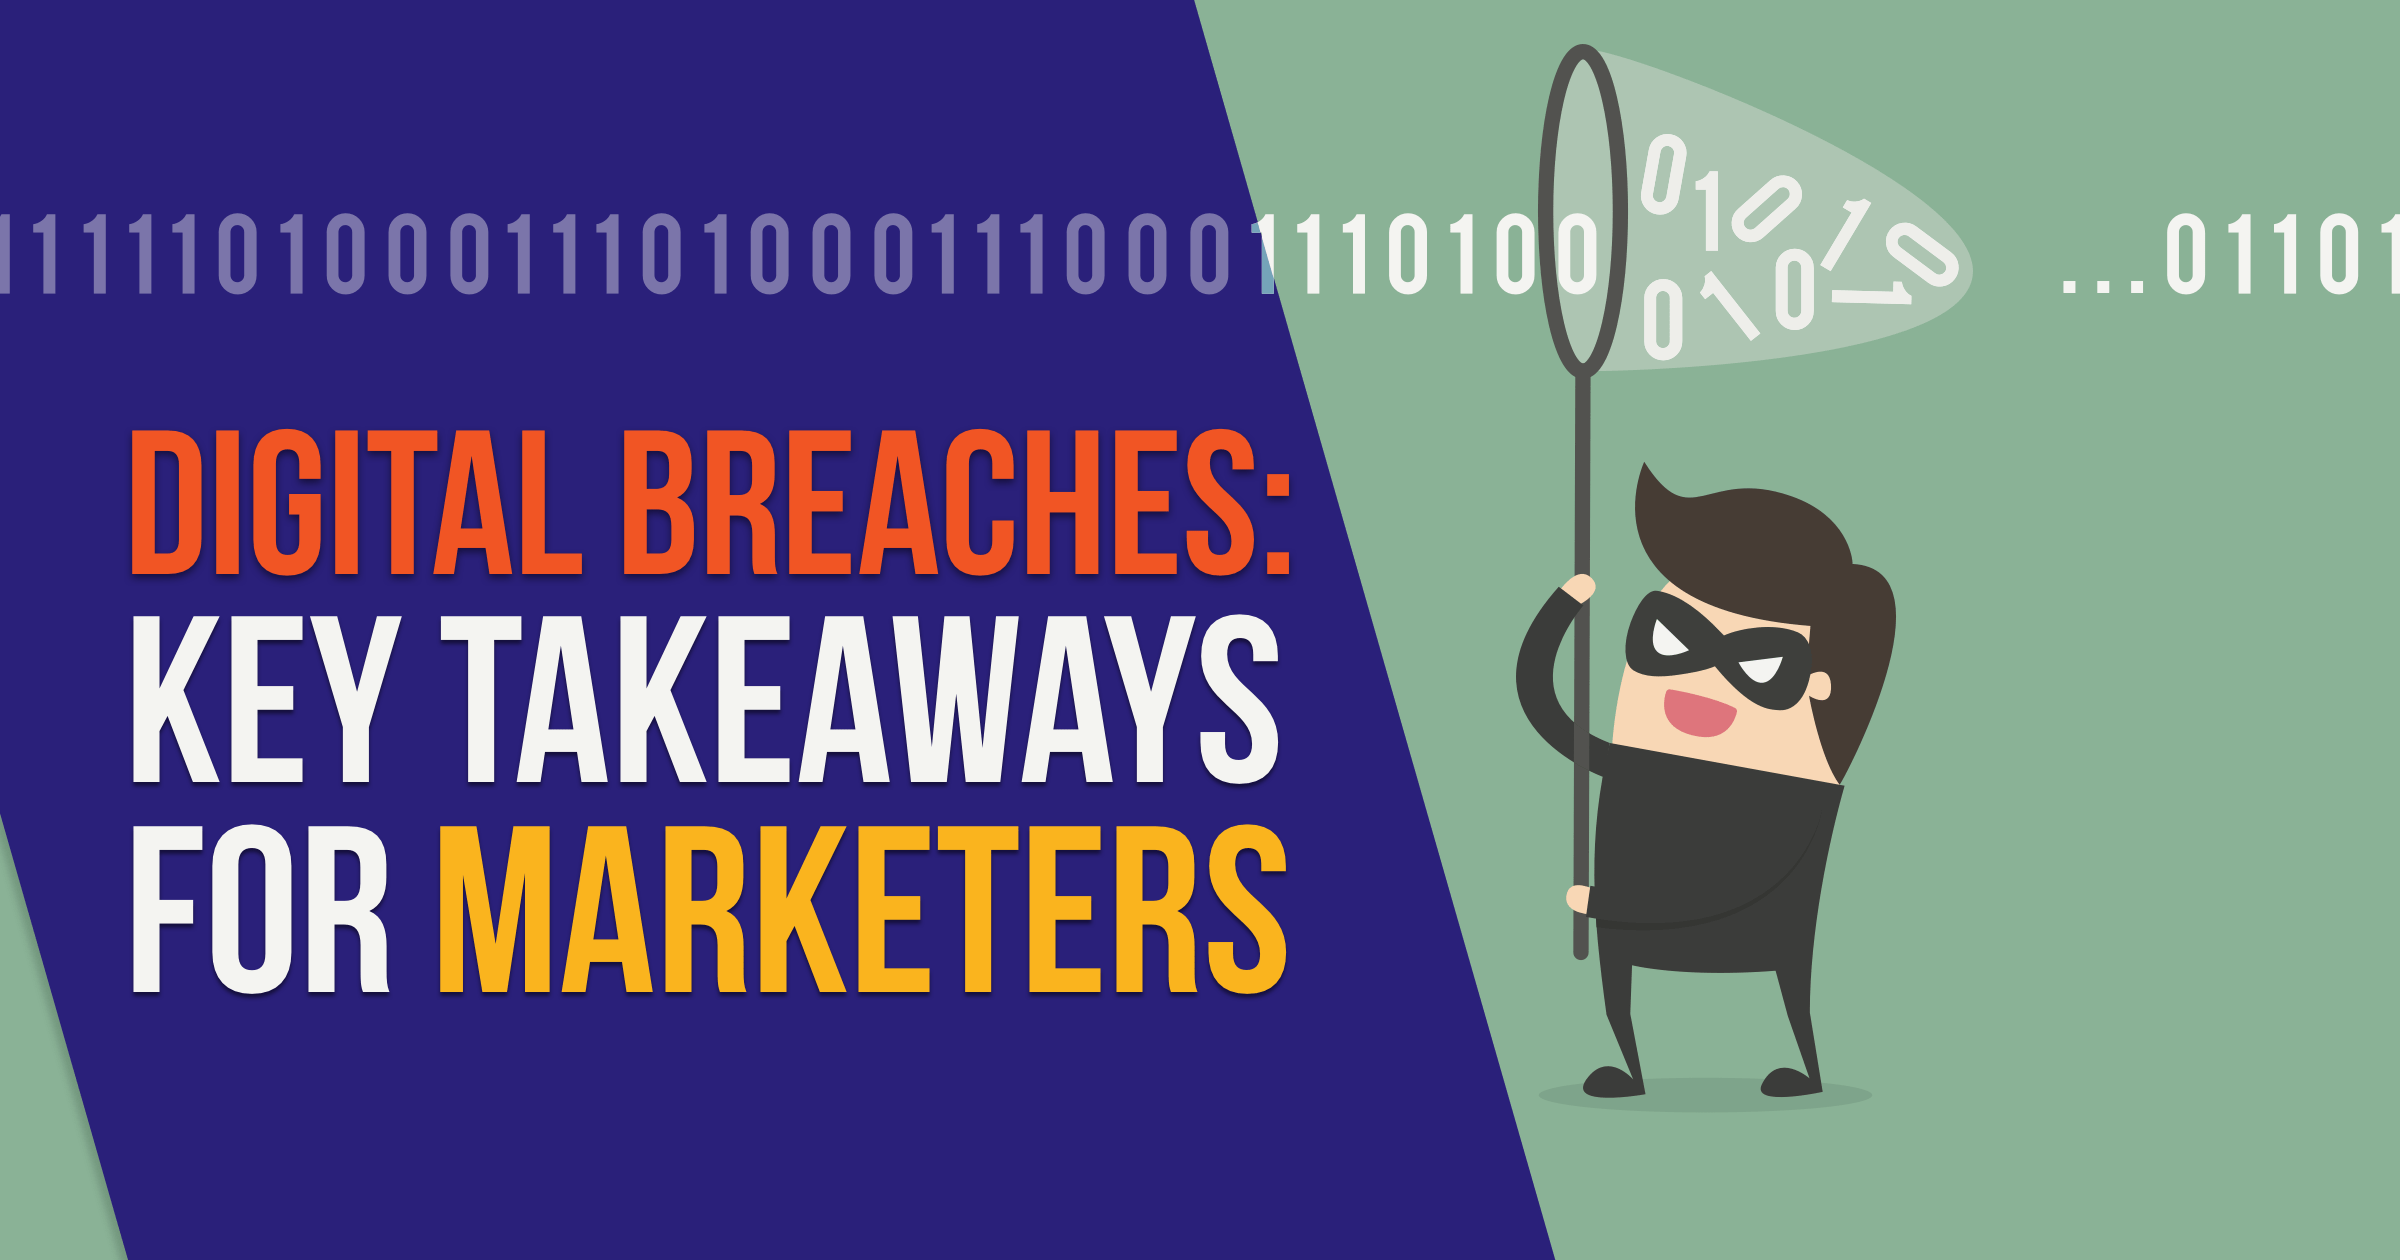 5 Things Marketers Need to Know about Digital Breaches in 2019